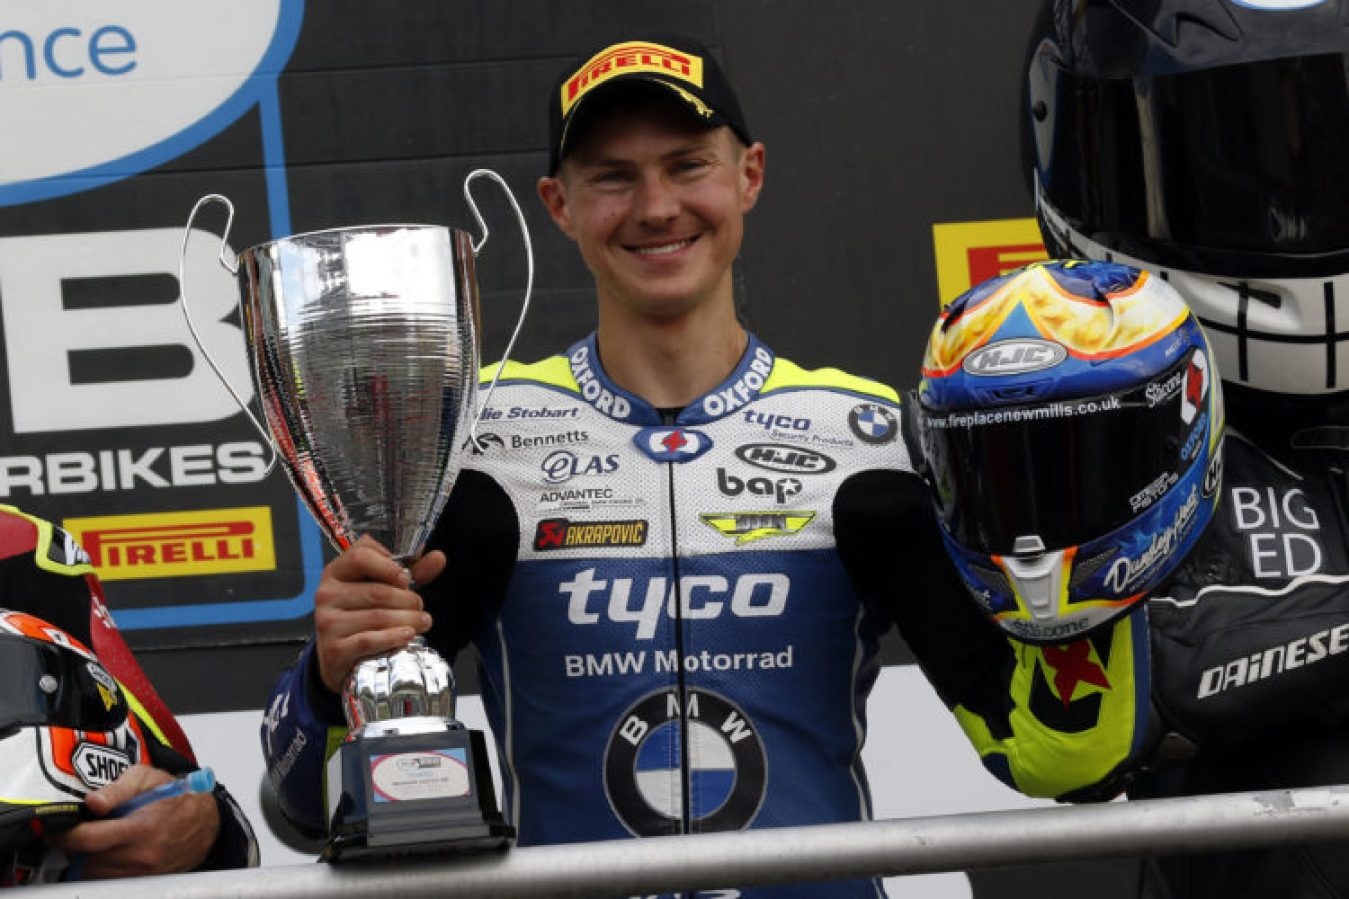 Christian Iddon was back on the podium at Brands Hatch